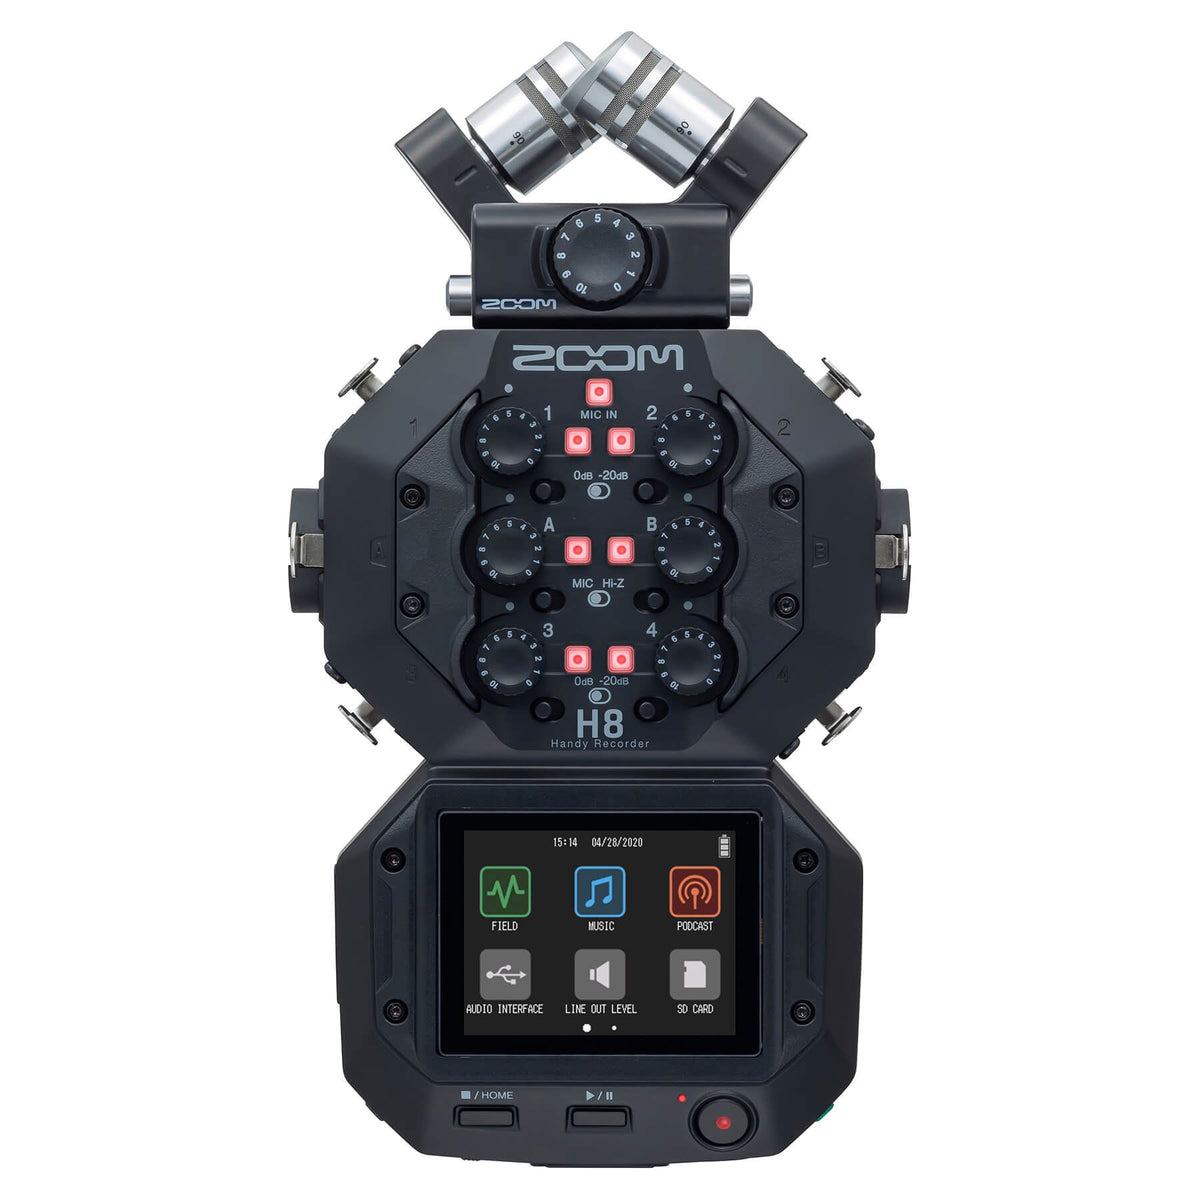 Zoom H8 Digital Handy Recorder